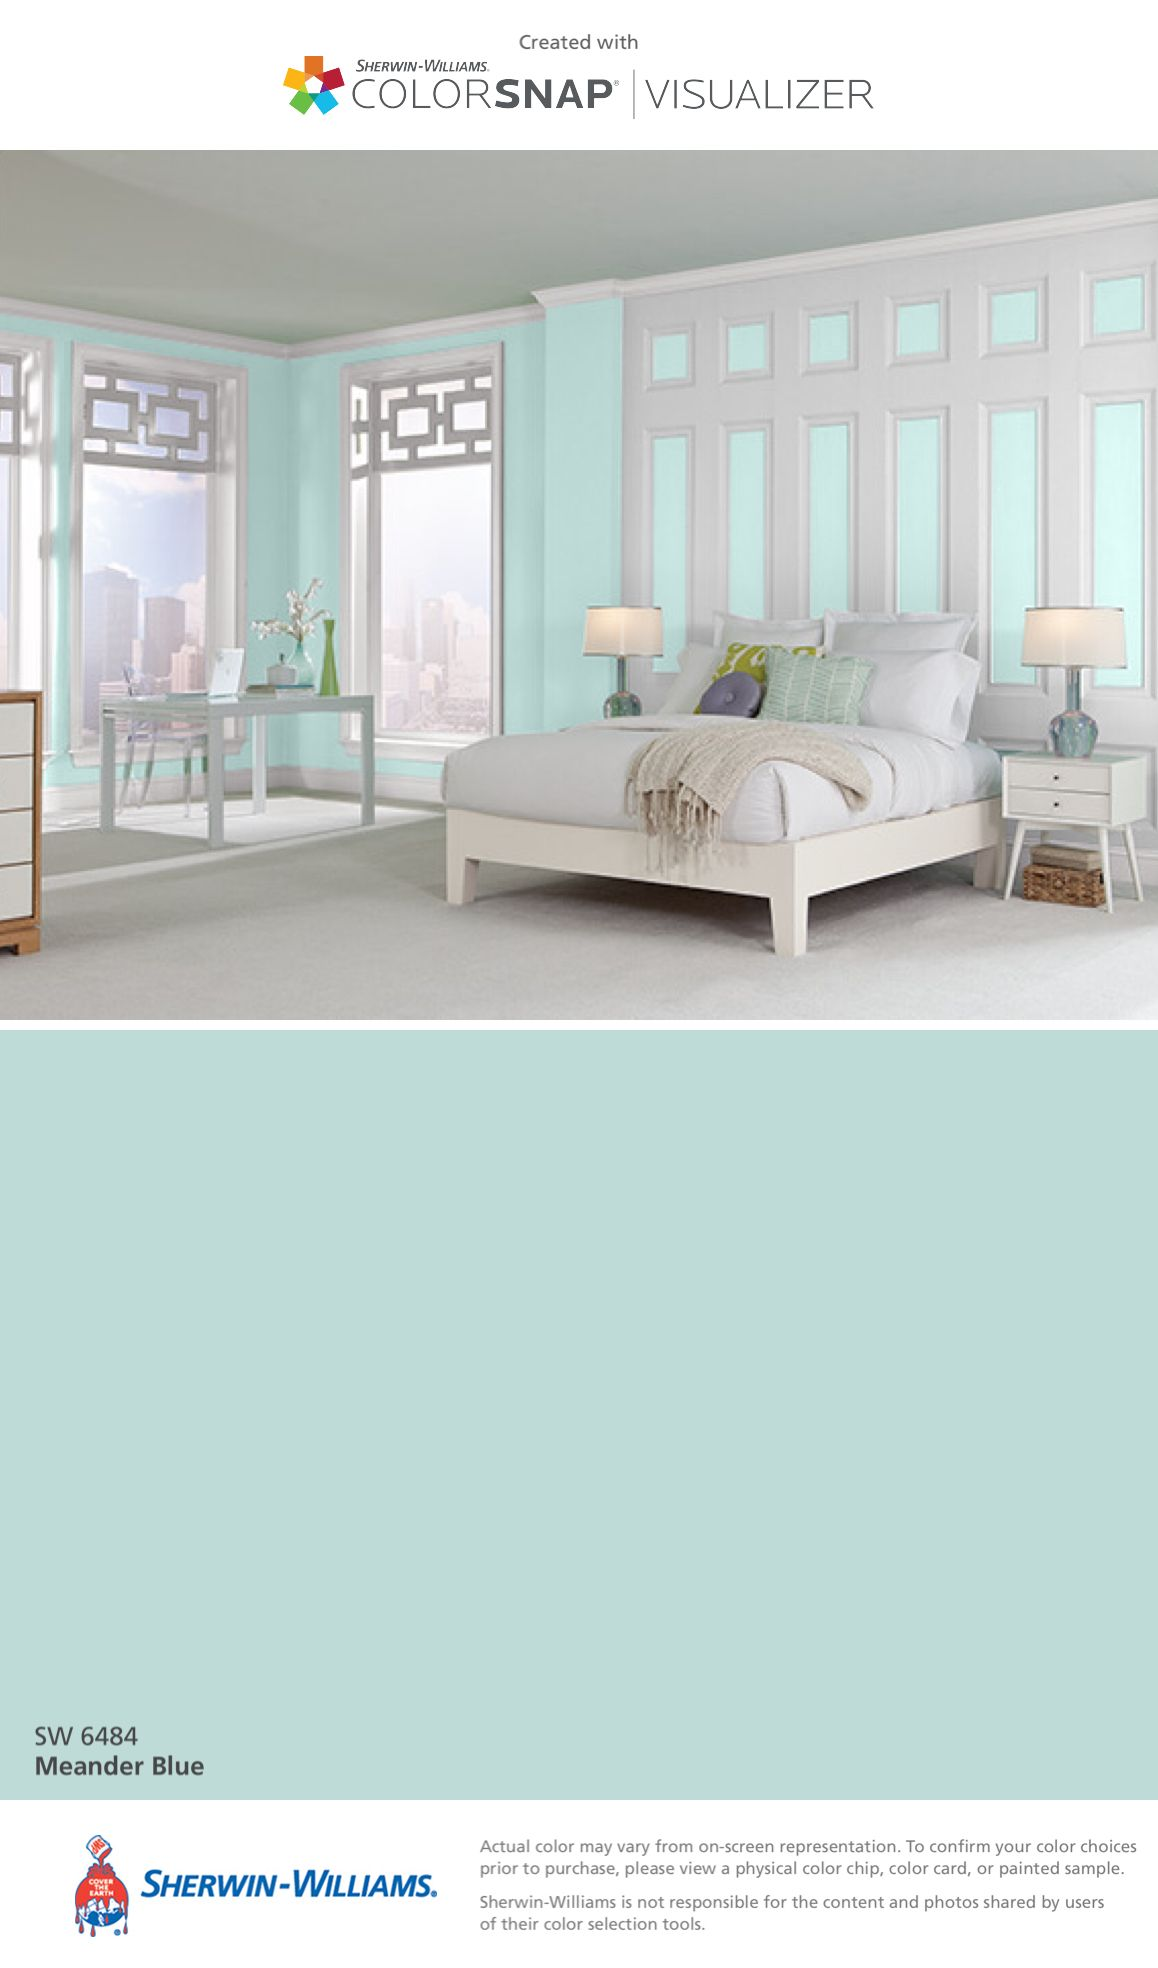 Sherwin williams paint colors sherwin williams 6249 storm cloud - I Found This Color With Colorsnap Visualizer For Iphone By Sherwin Williams Meander